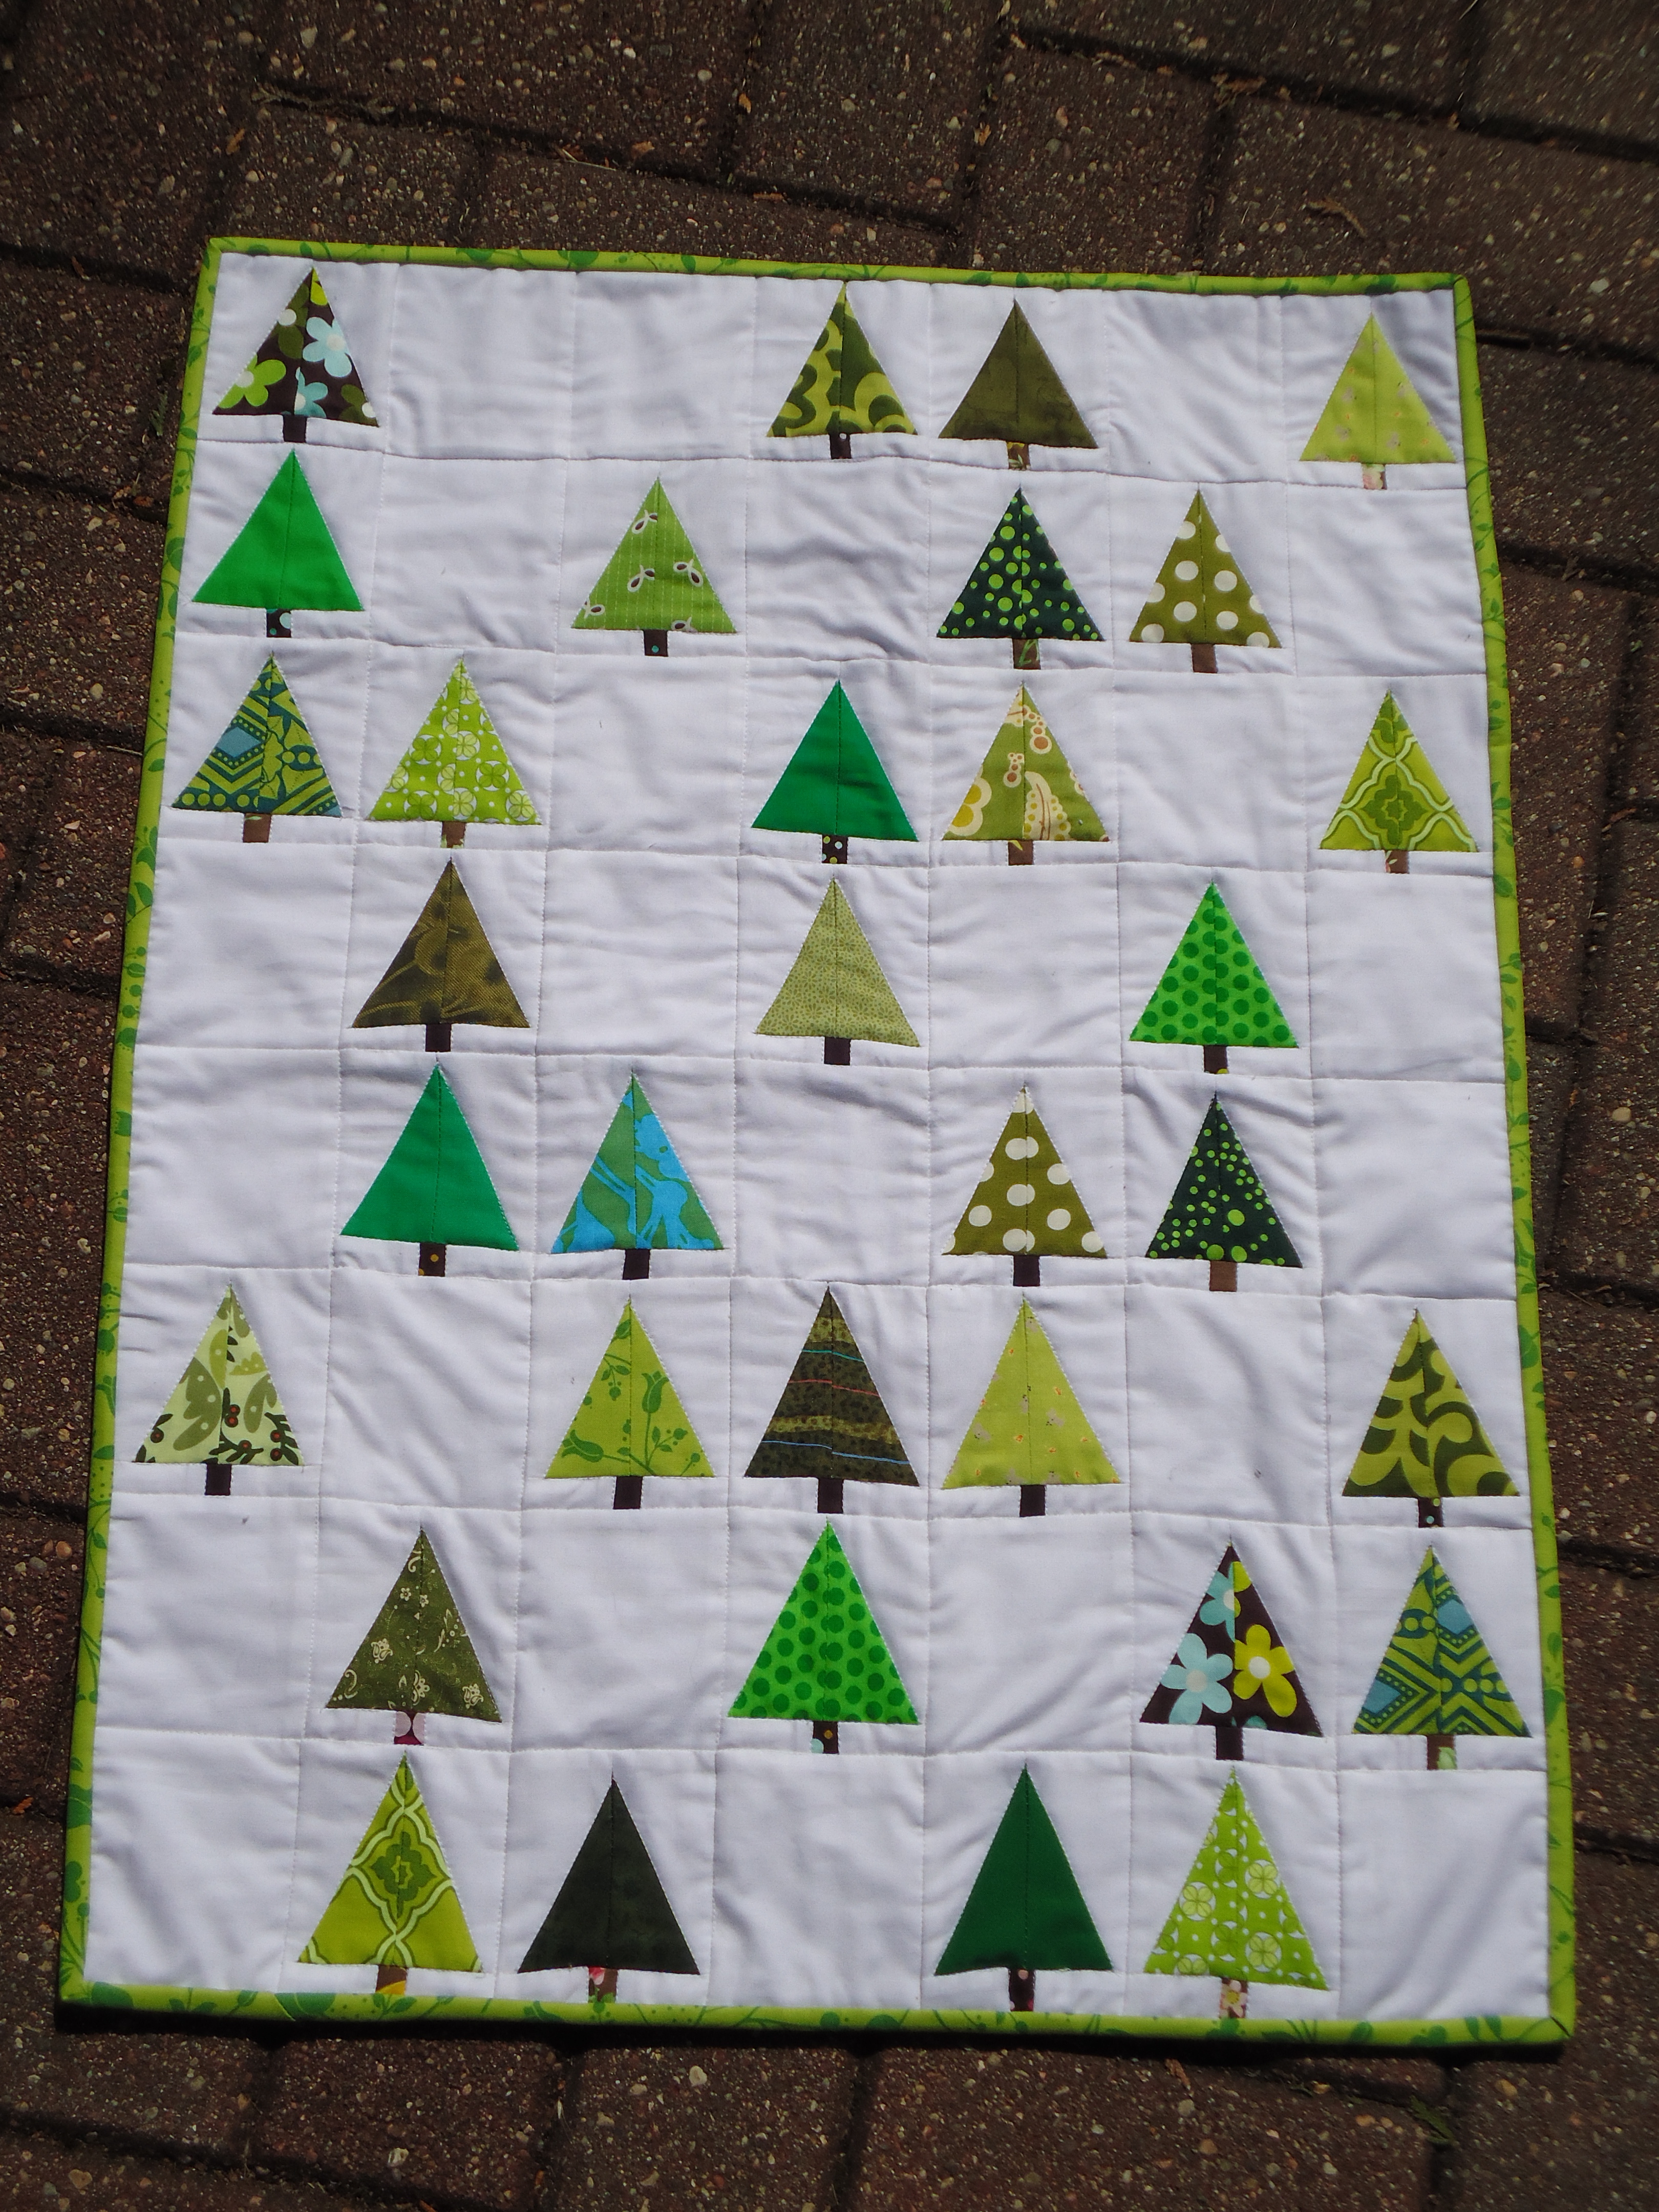 forest parties quilt and quilts the creativity pins geese of grandbabies blog quiltbest pi in friends use diy pots projects